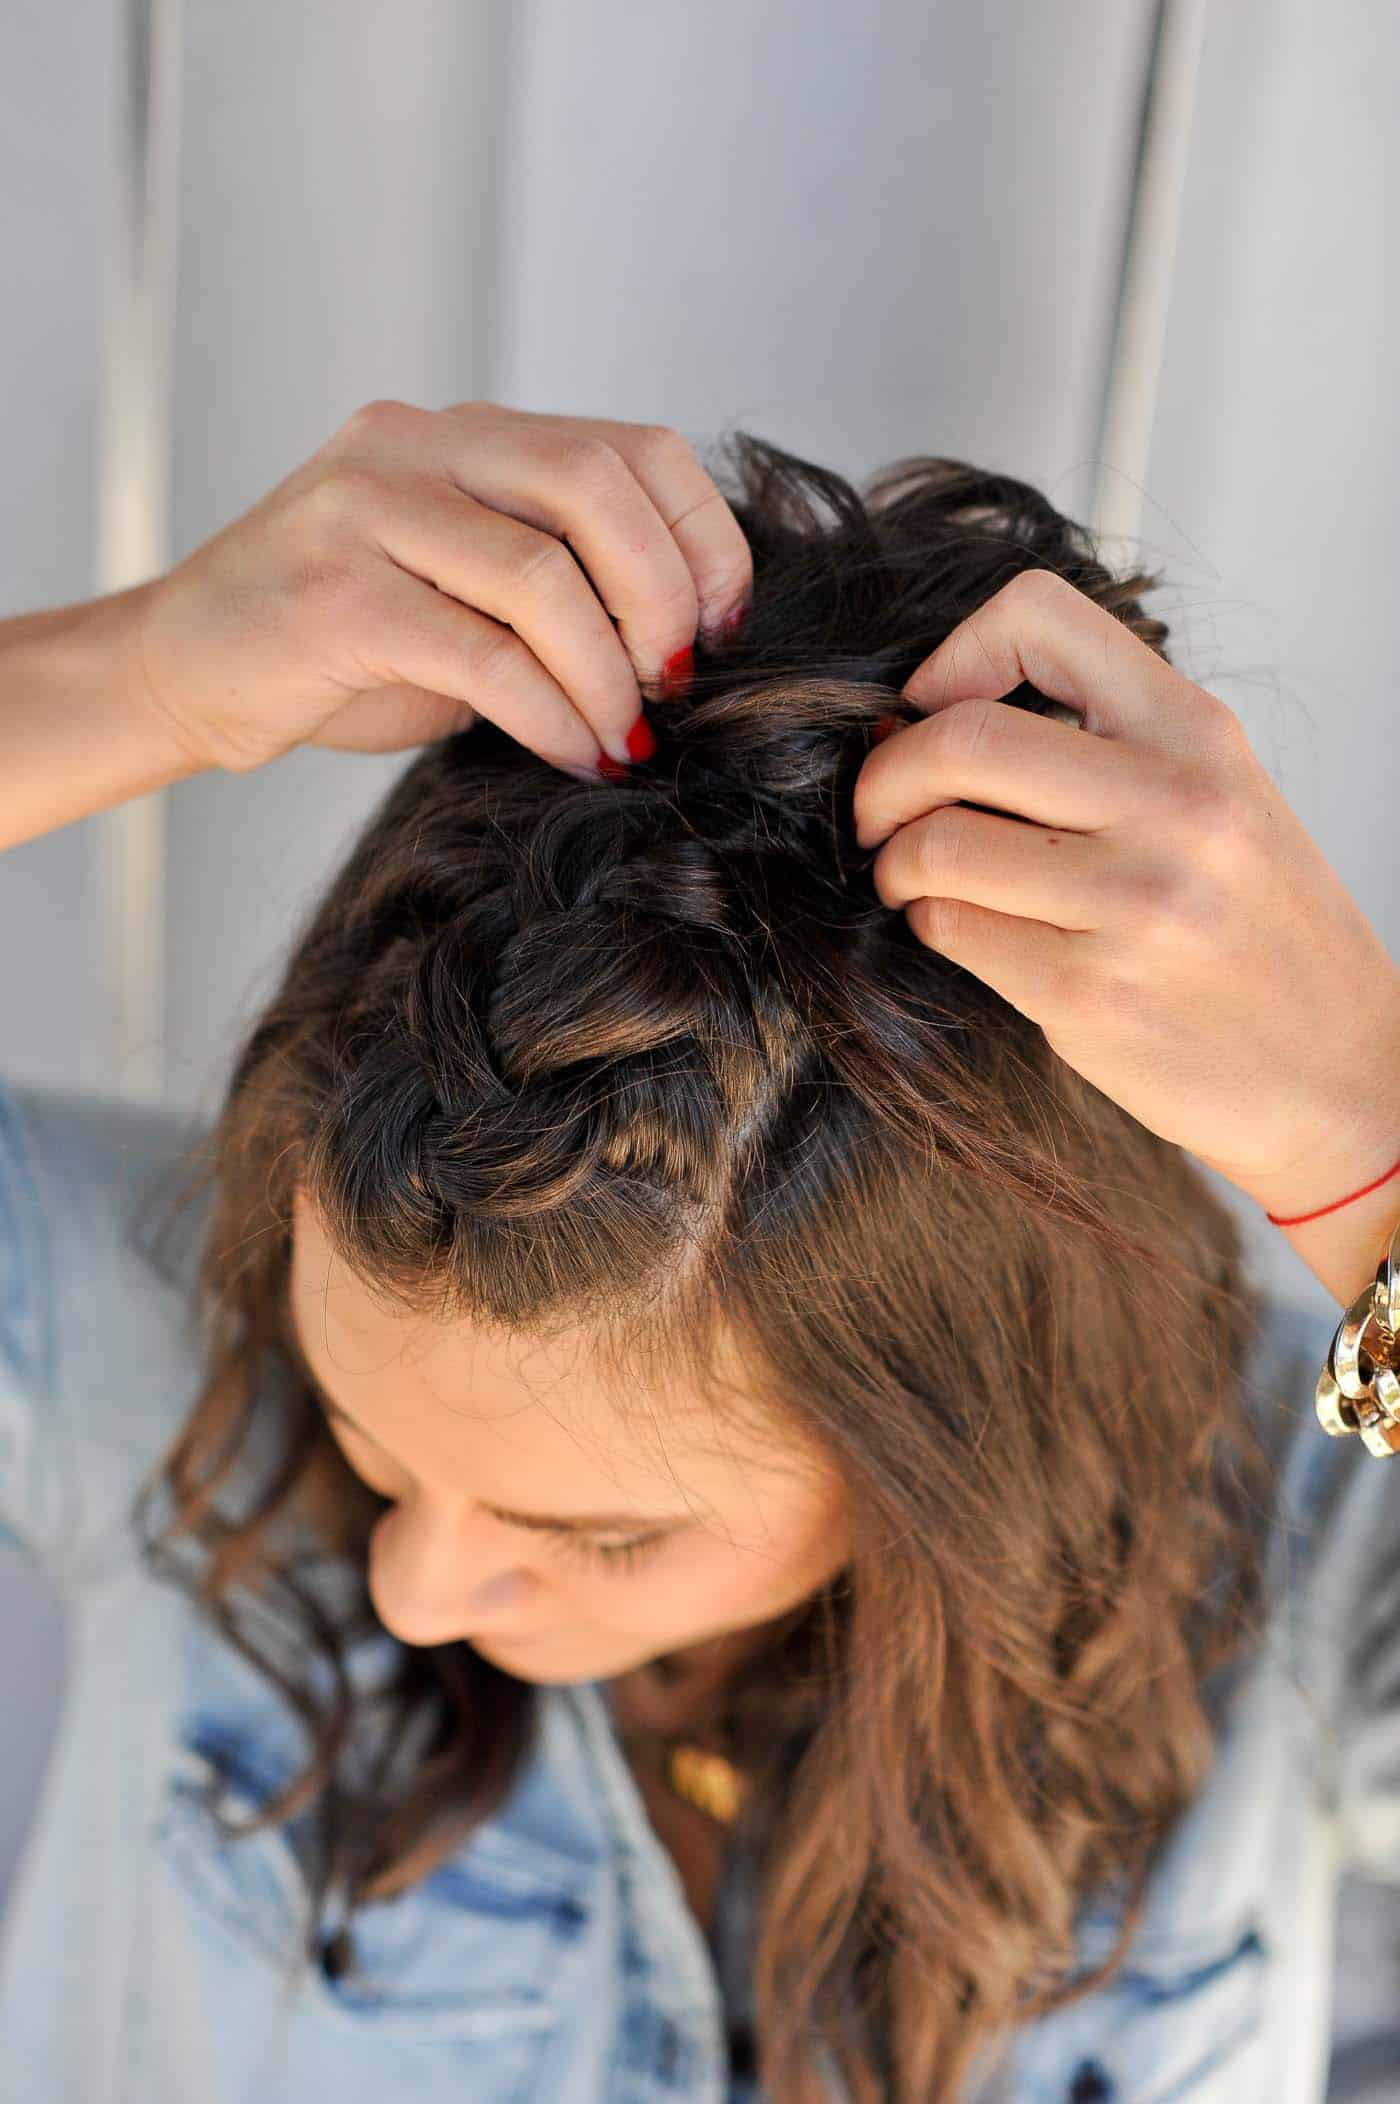 braided hairstyles for short hair, braid ideas - My Style Vita @mystylevita